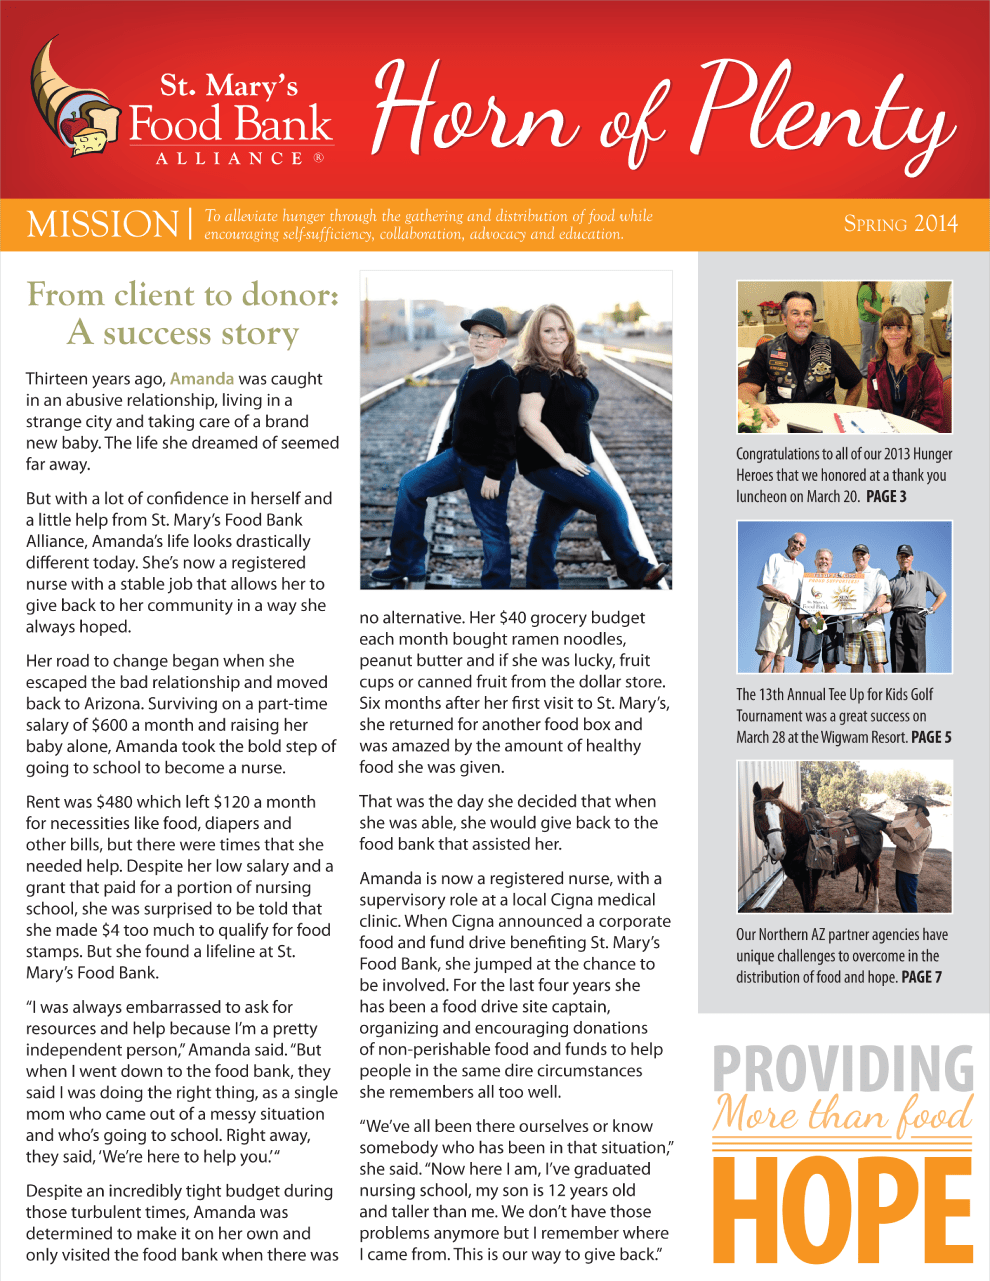 Horn of Plenty Newsletter Spring 2014